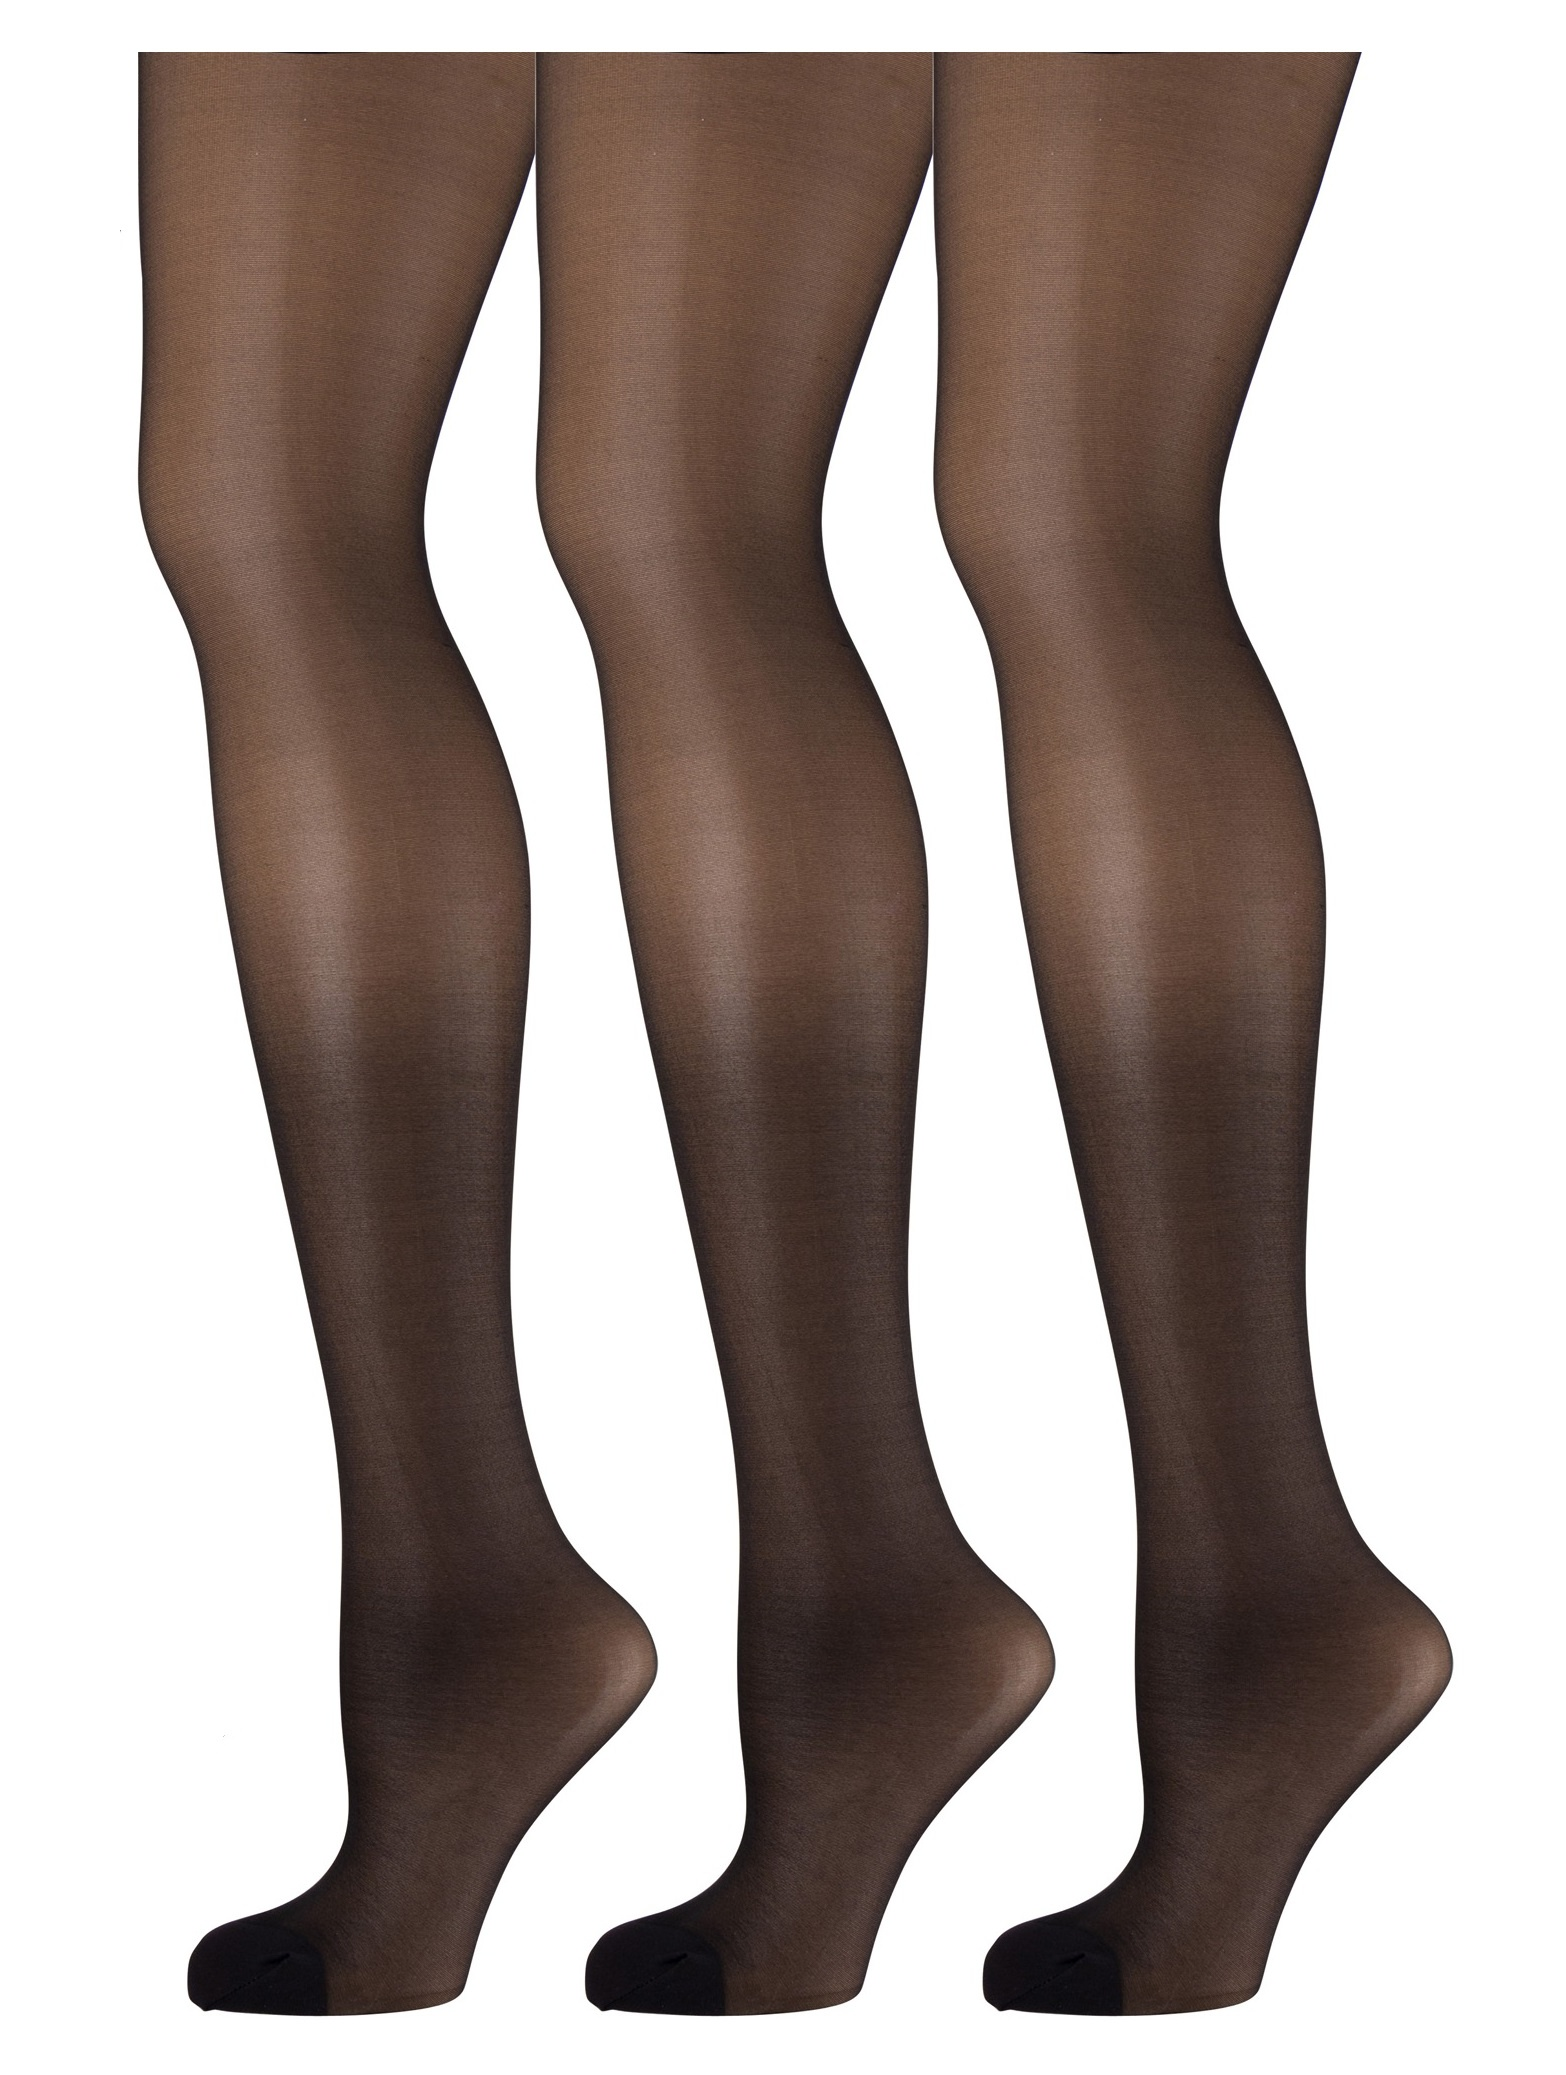 082b014bded5e Mod & Tone - 3 Pack of Mod & Tone Sheer Support Control Top 30D Womens  Pantyhose (Honey, Small) - Walmart.com